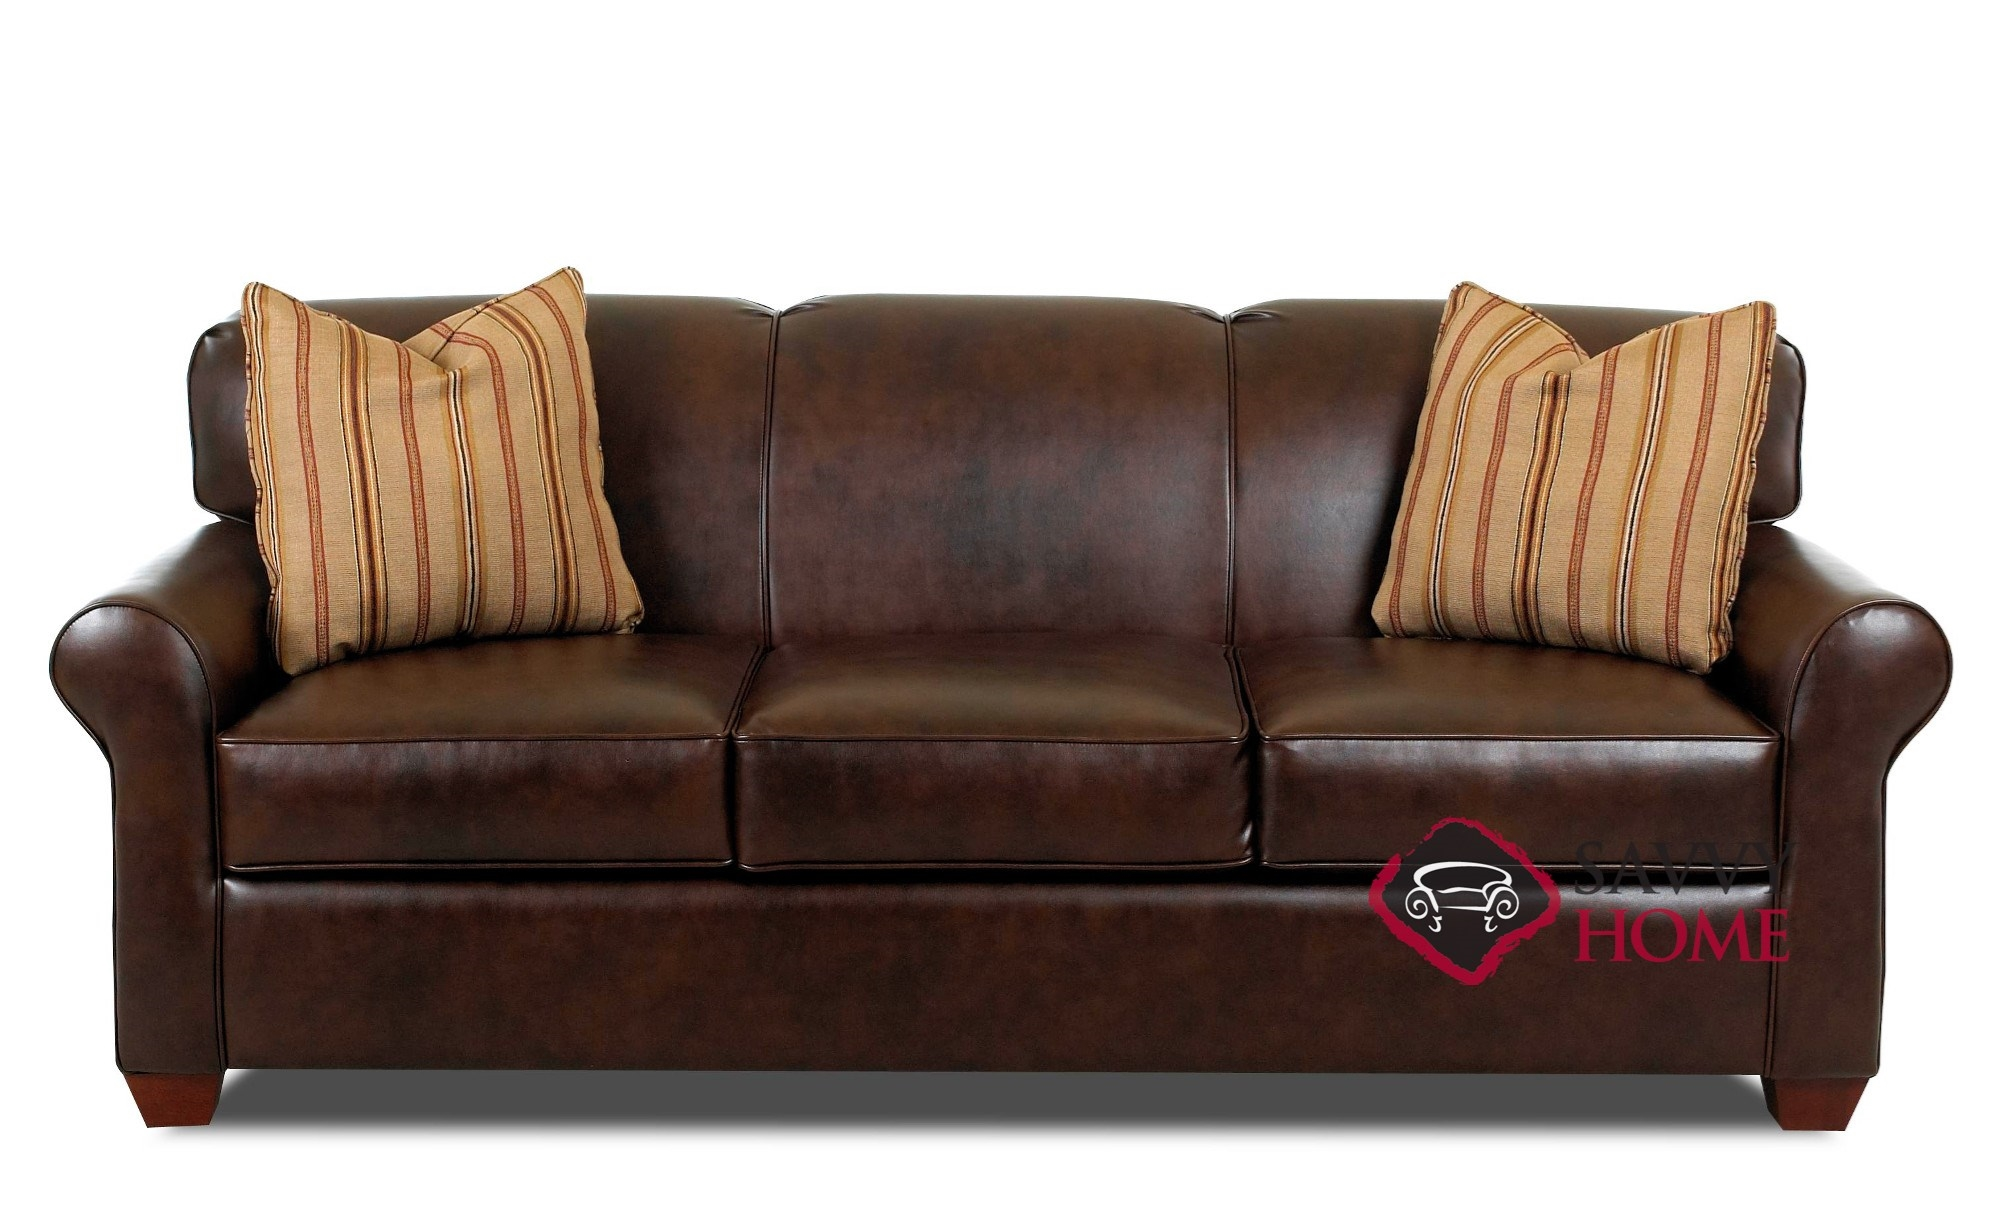 top leather sleeper sofas sofa clearance warehouse west midlands calgary queen by savvy is fully